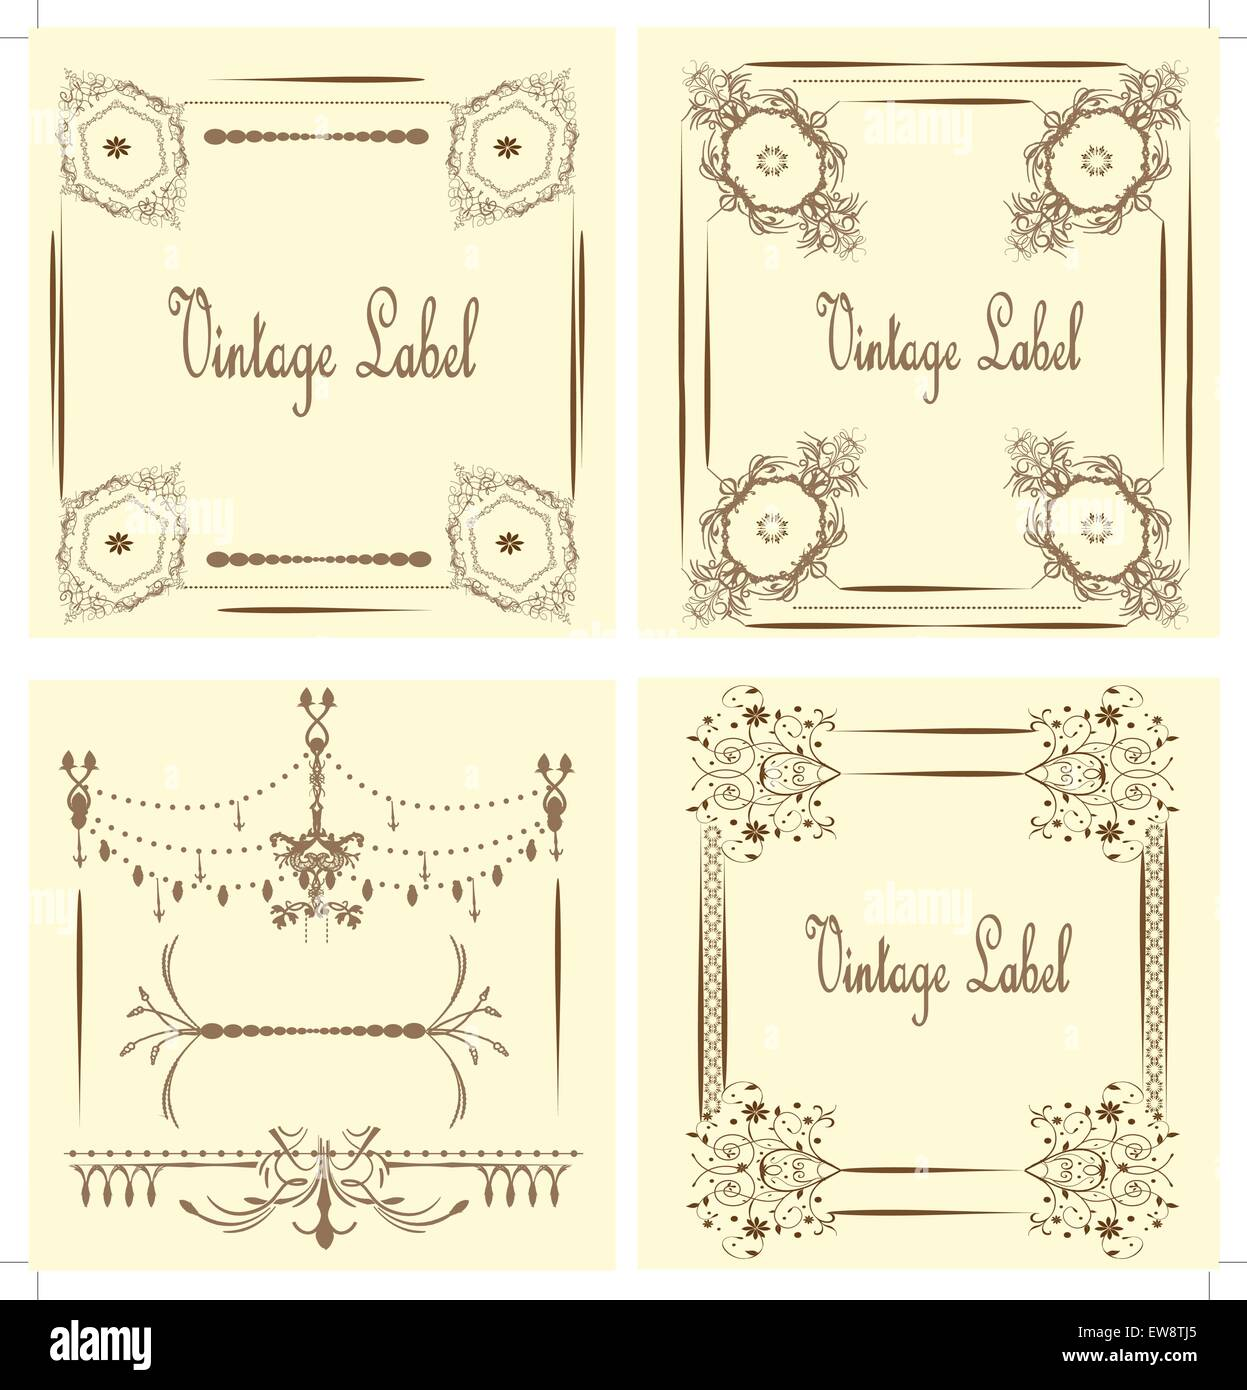 Vintage labels with ornate elegant abstract floral design, on yellow. Vector illustration. Stock Vector